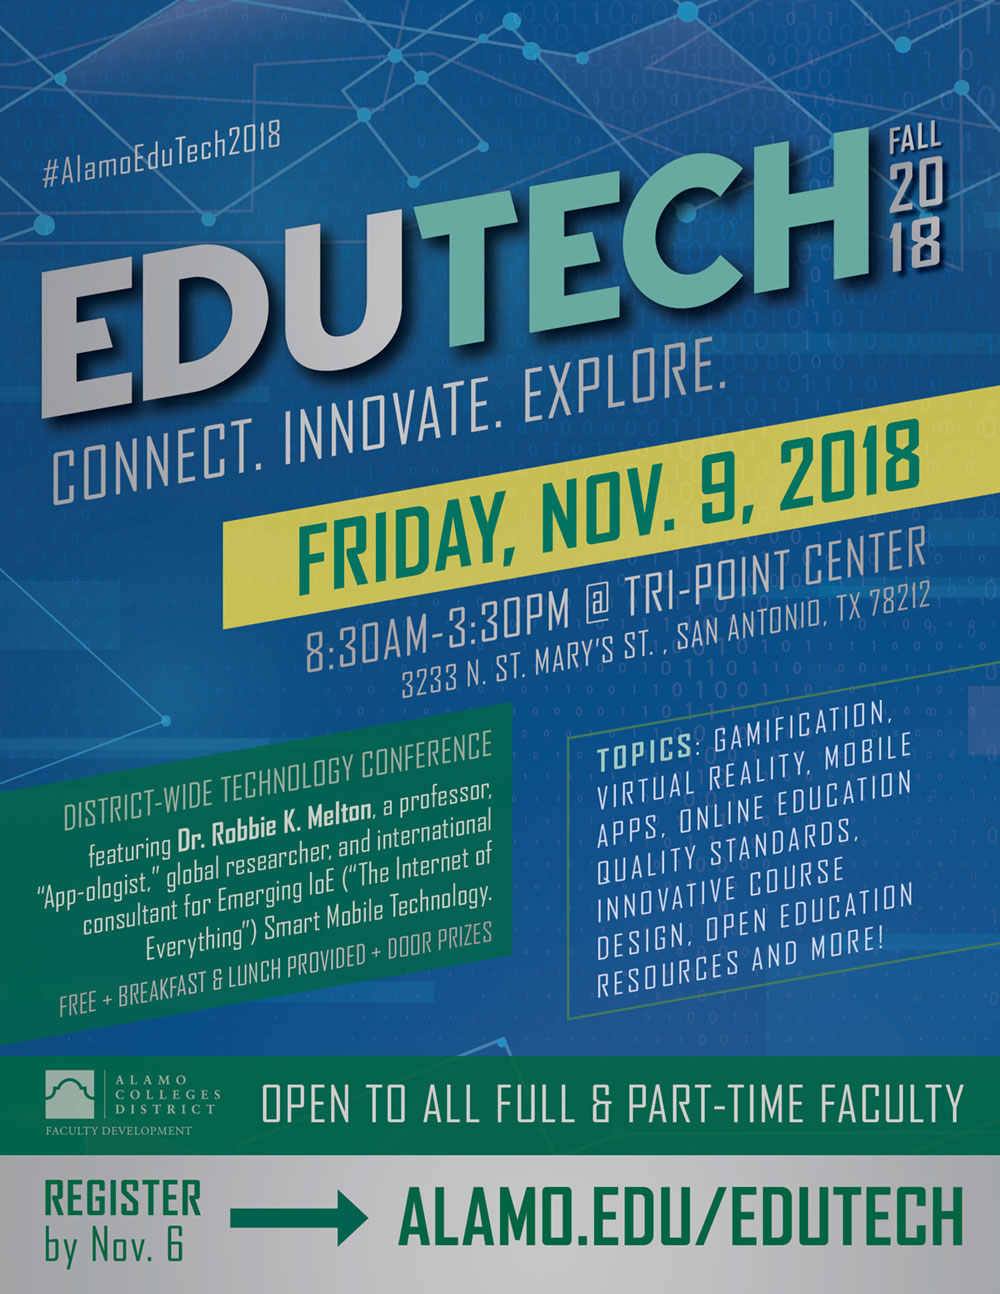 Flyer announcing EduTech Fall 2018, Alamo Colleges District-Wide Free Technology Conference. Colors are shades of Alamo Colleges blue and green with a yellow save the date bar.